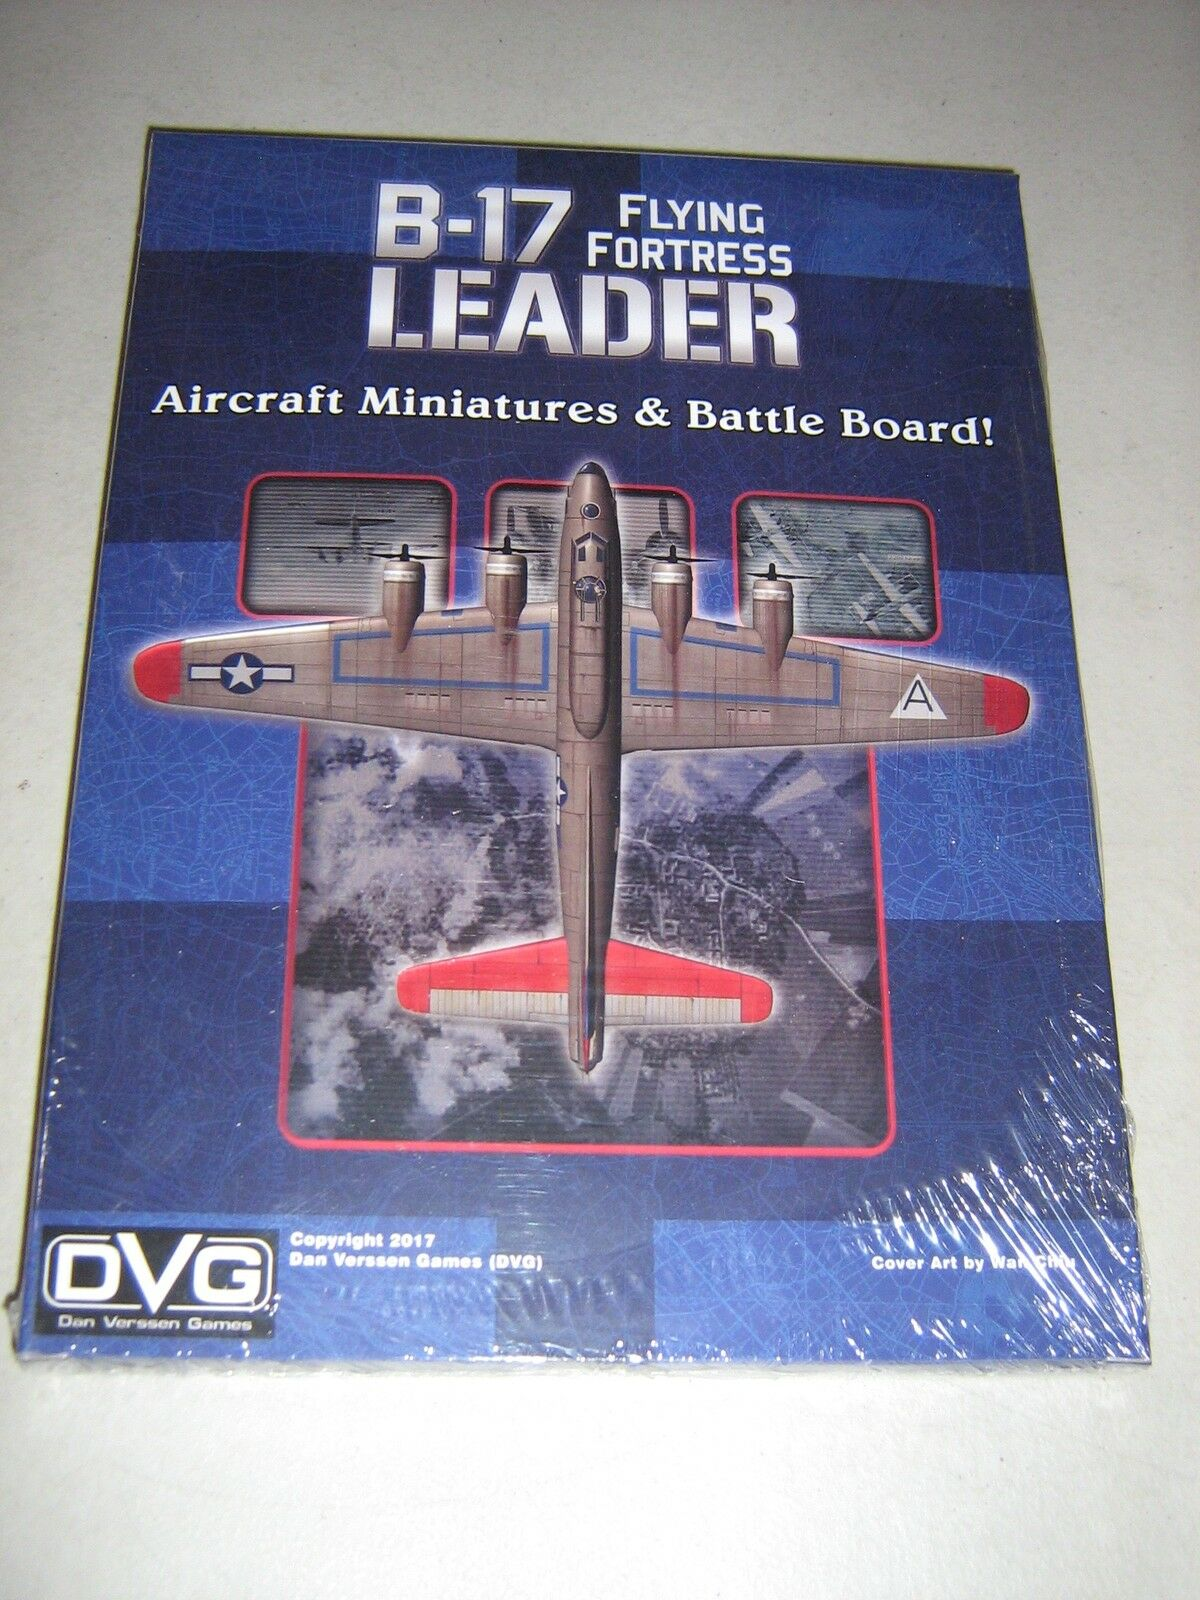 B-17 Flying  Fortress Leader Miniatures & Display (nuovo)  online al miglior prezzo